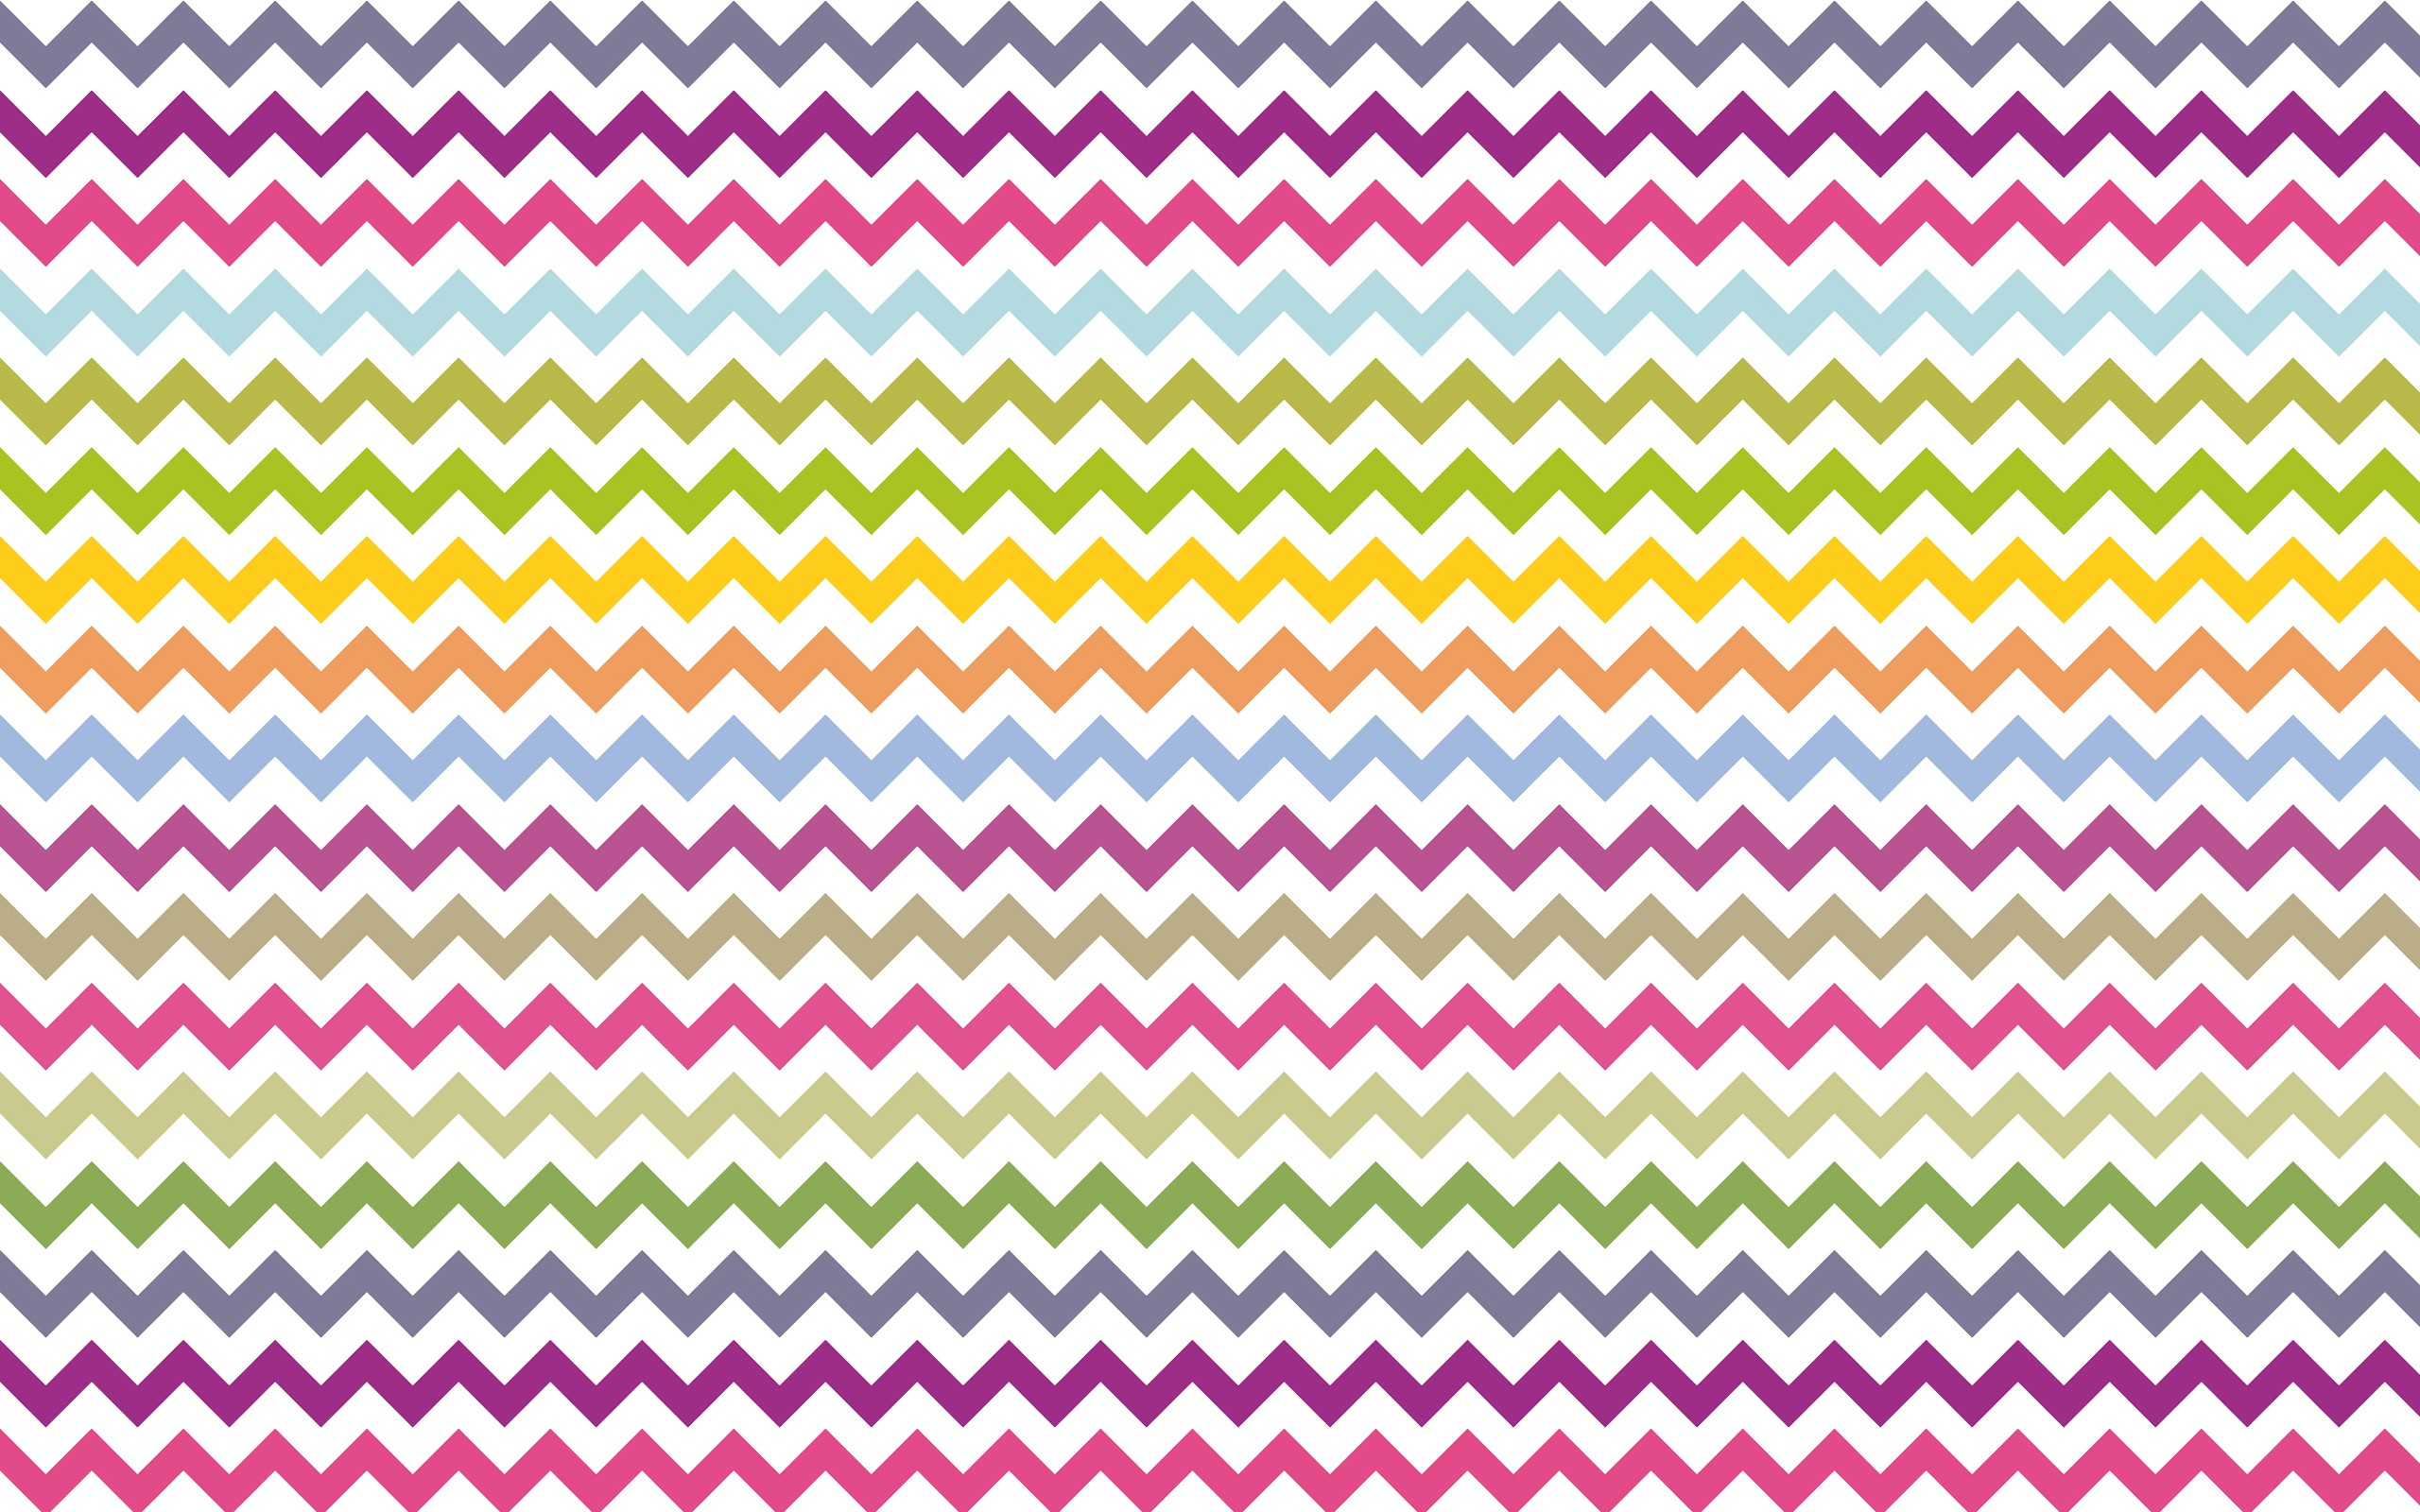 chevron pattern background - HD 1920×1200